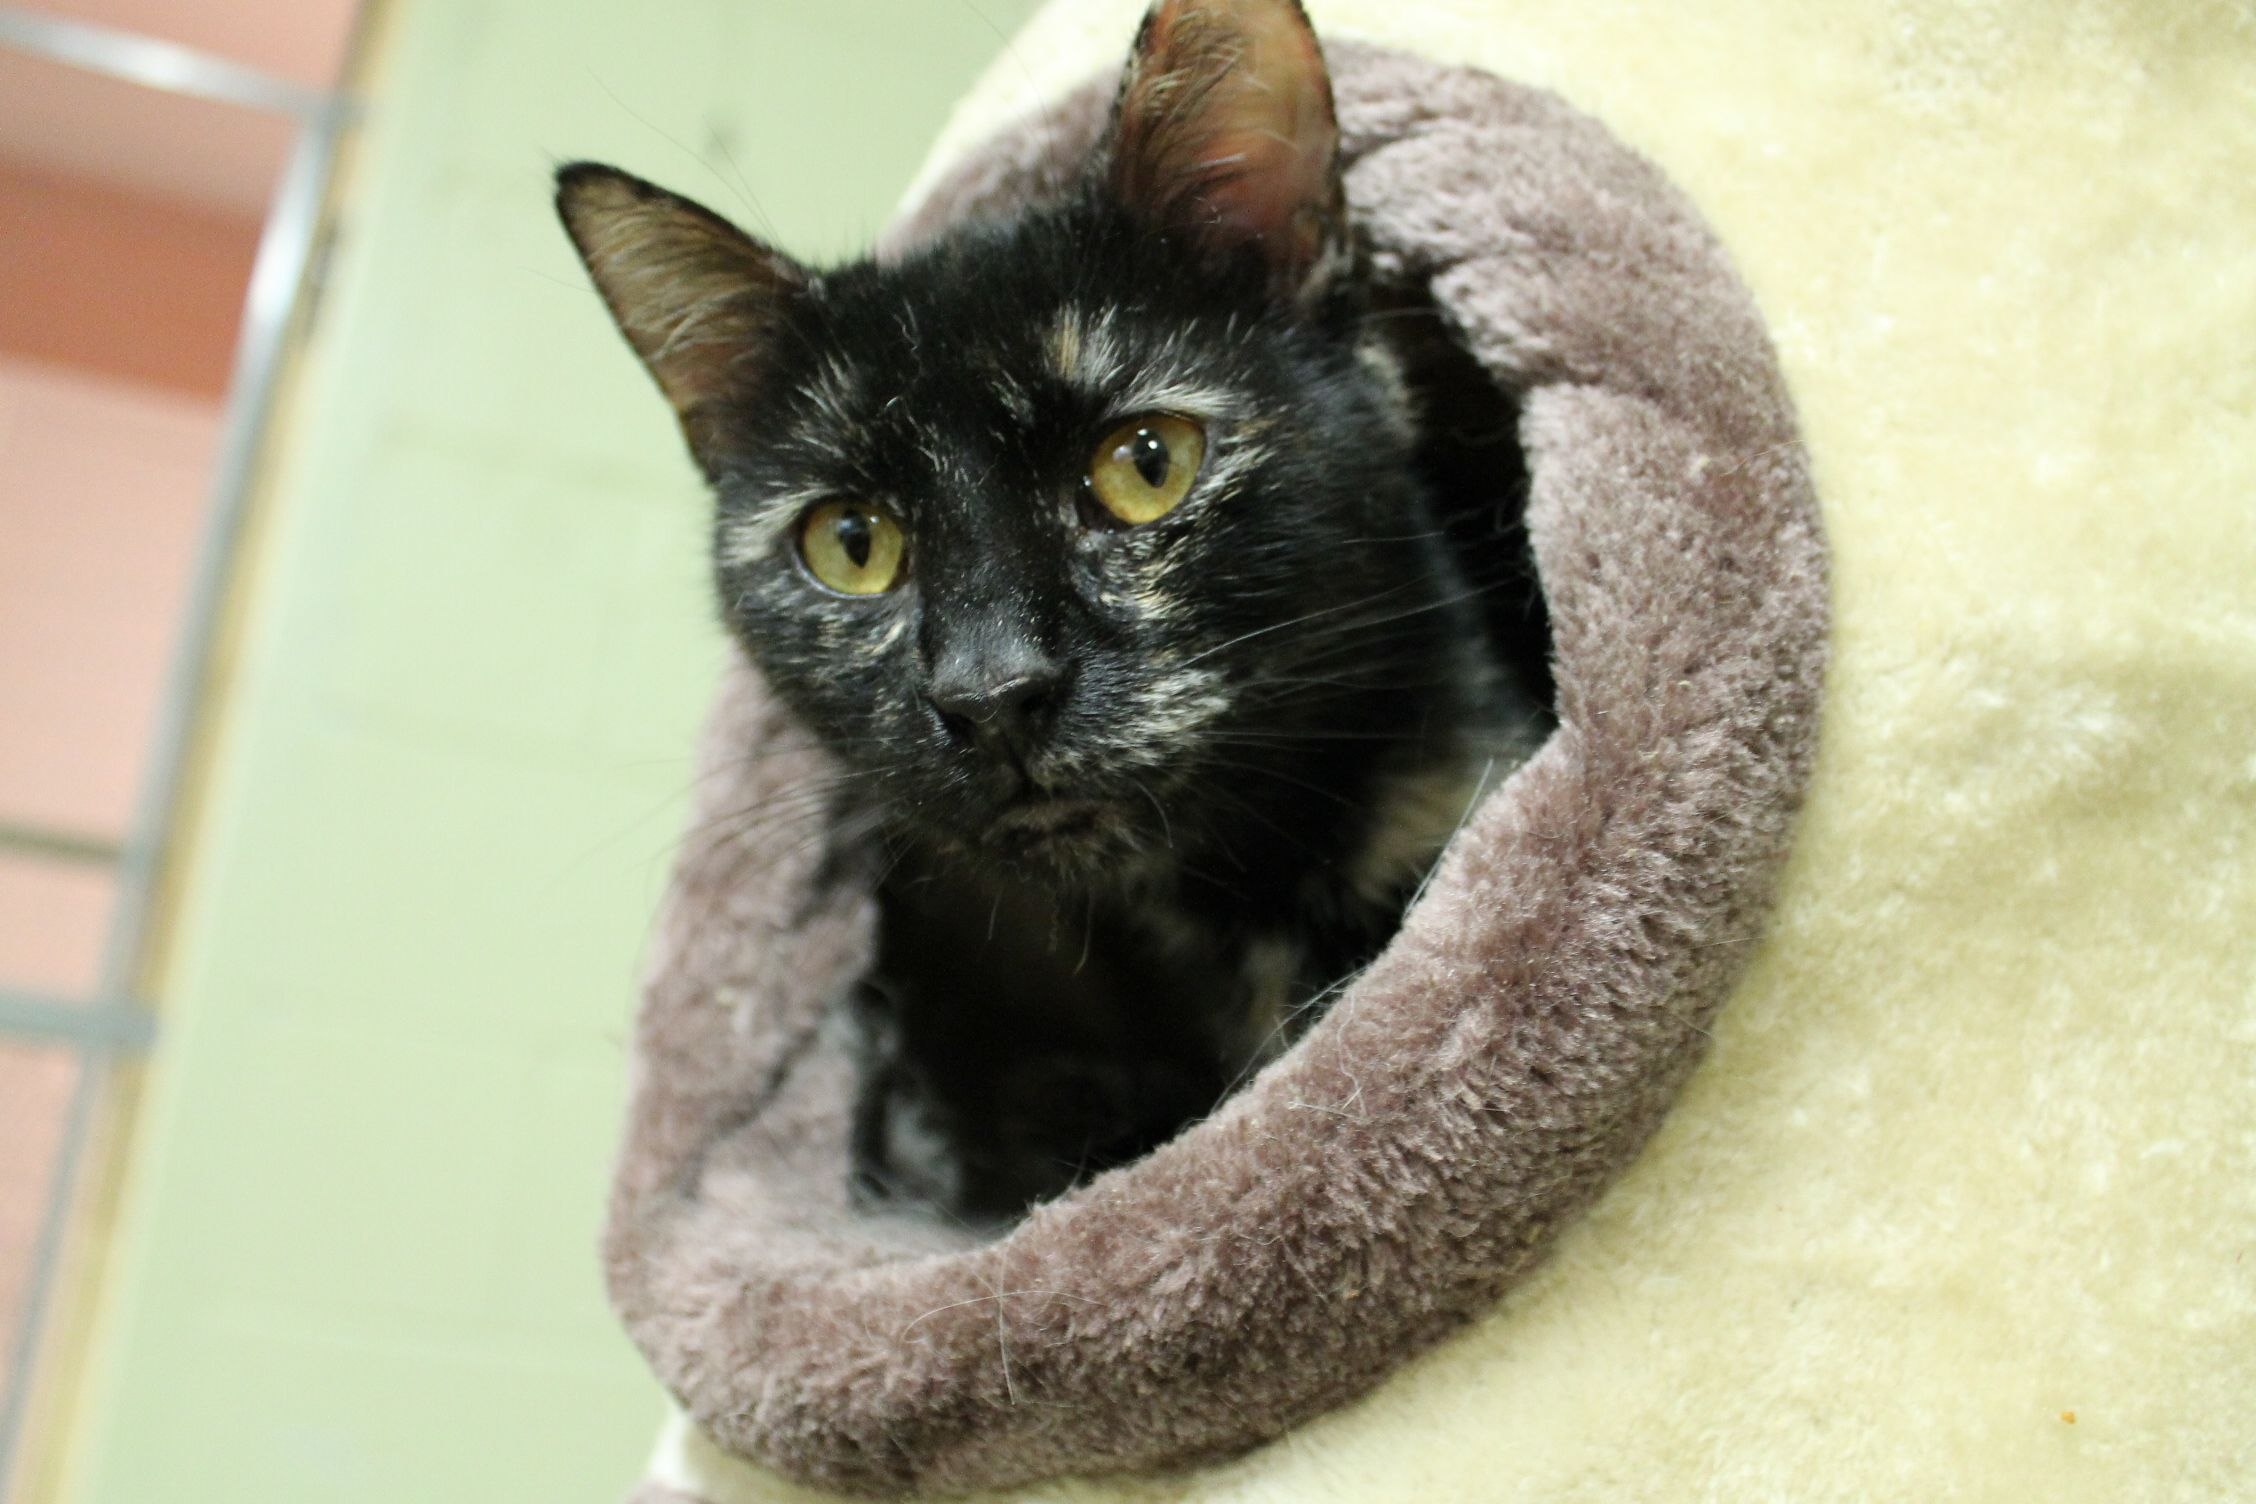 This little girl is quiet and a bit shy at first, but once she gets to know you, Jillian is all about the cuddles. She's great with children and other cats. This two-year-old sweetheart is always up for playtime.